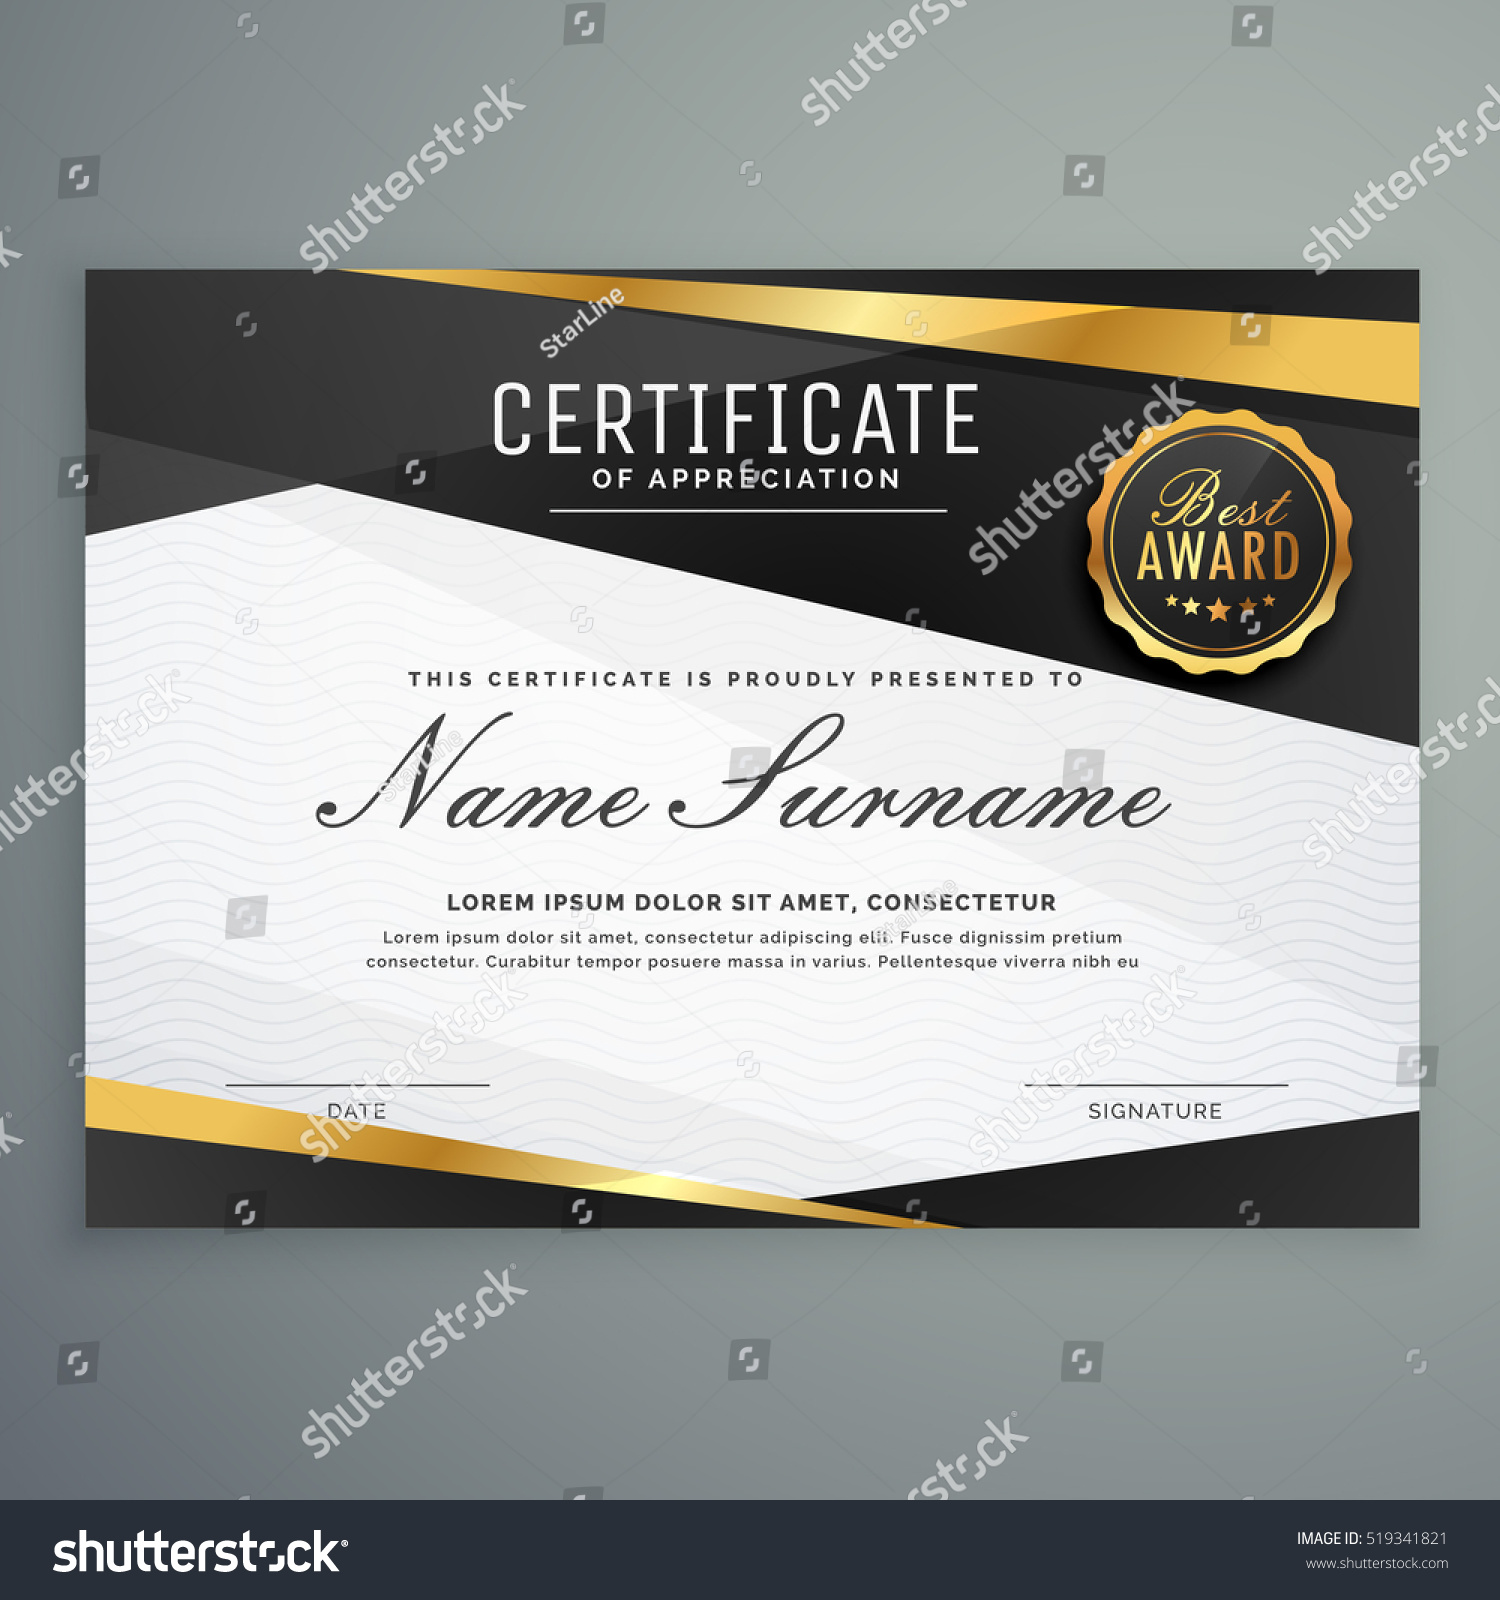 Stock certificate template certificate templates 900 series jones school supply custom templates for bindertek stock certificates and ledger sheets bindertek free custom xflitez Choice Image